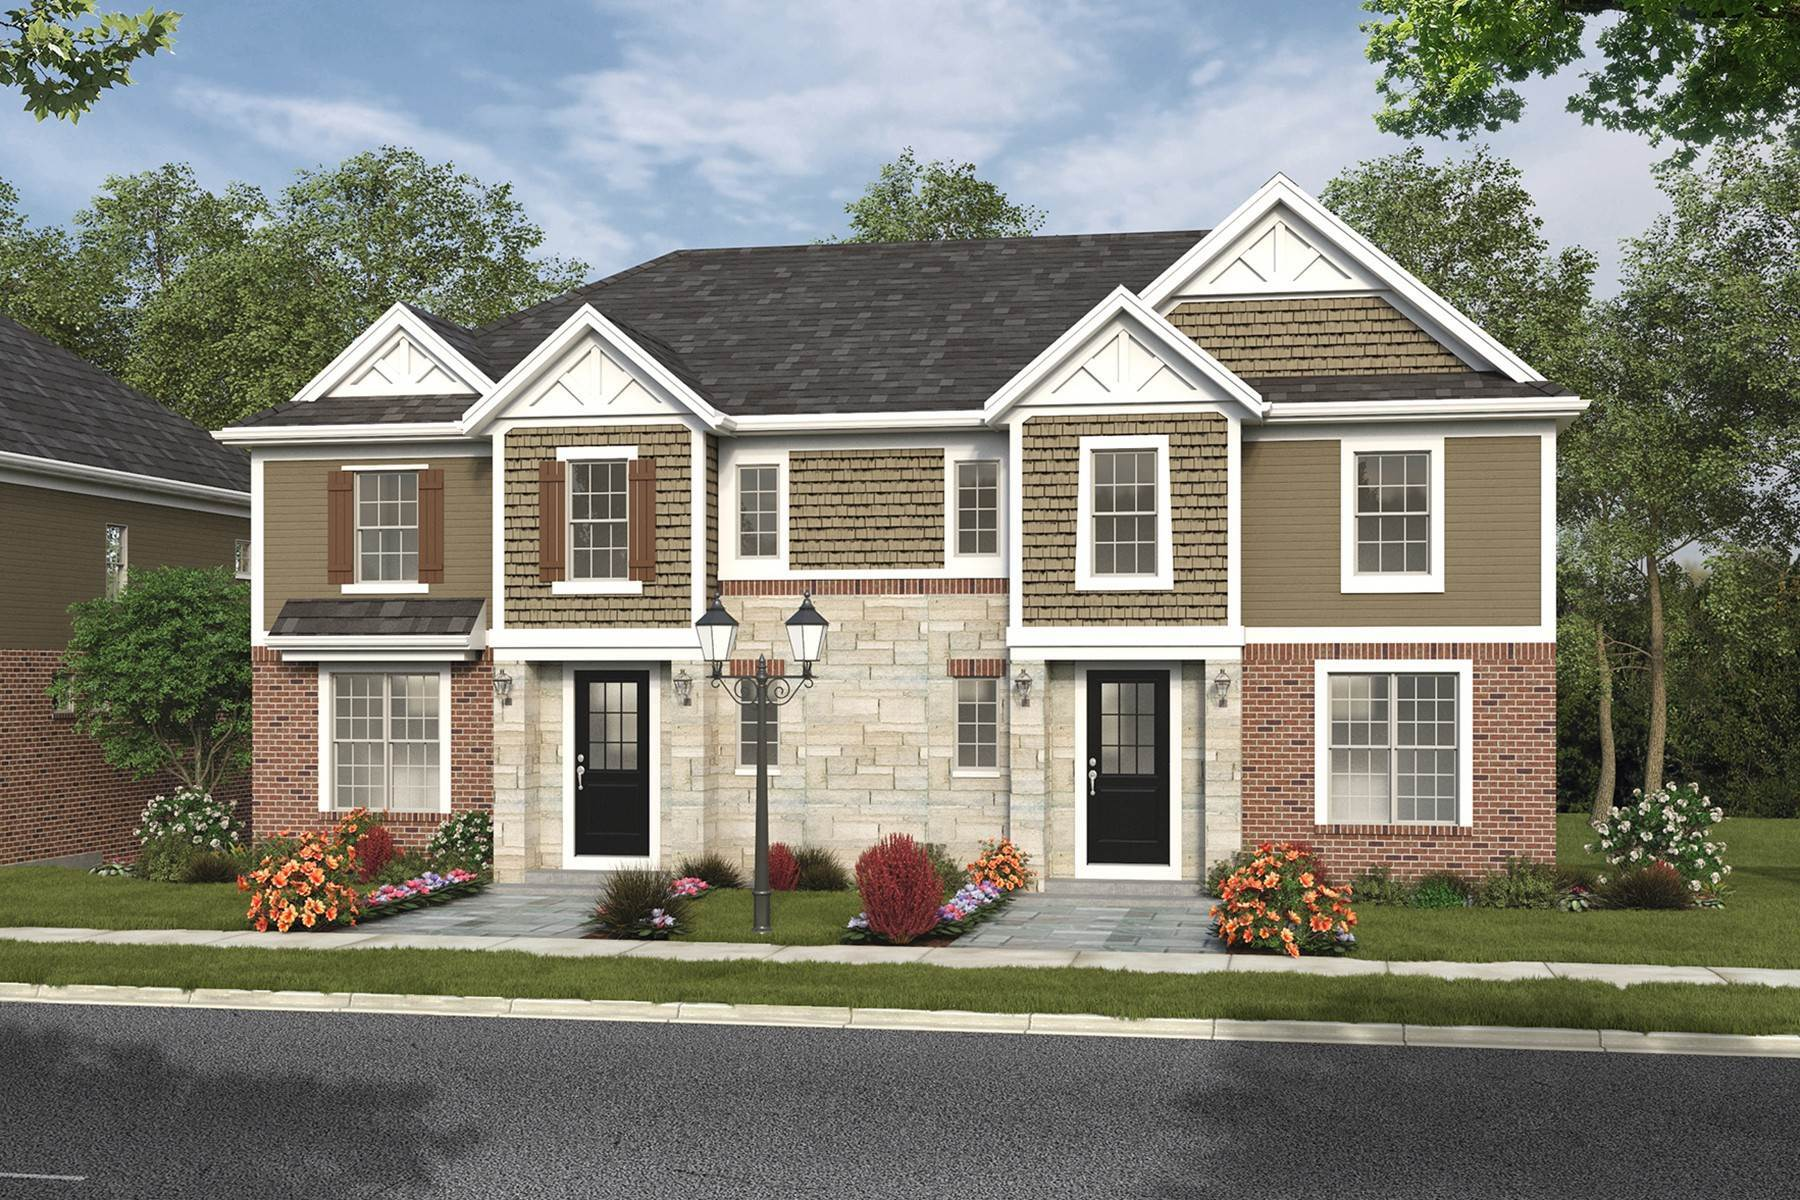 Condominiums for Sale at Creekside Pointe - Blue Ash Premier Lifestyle Community 9316 Old Plainfield Rd Blue Ash, Ohio 45236 United States